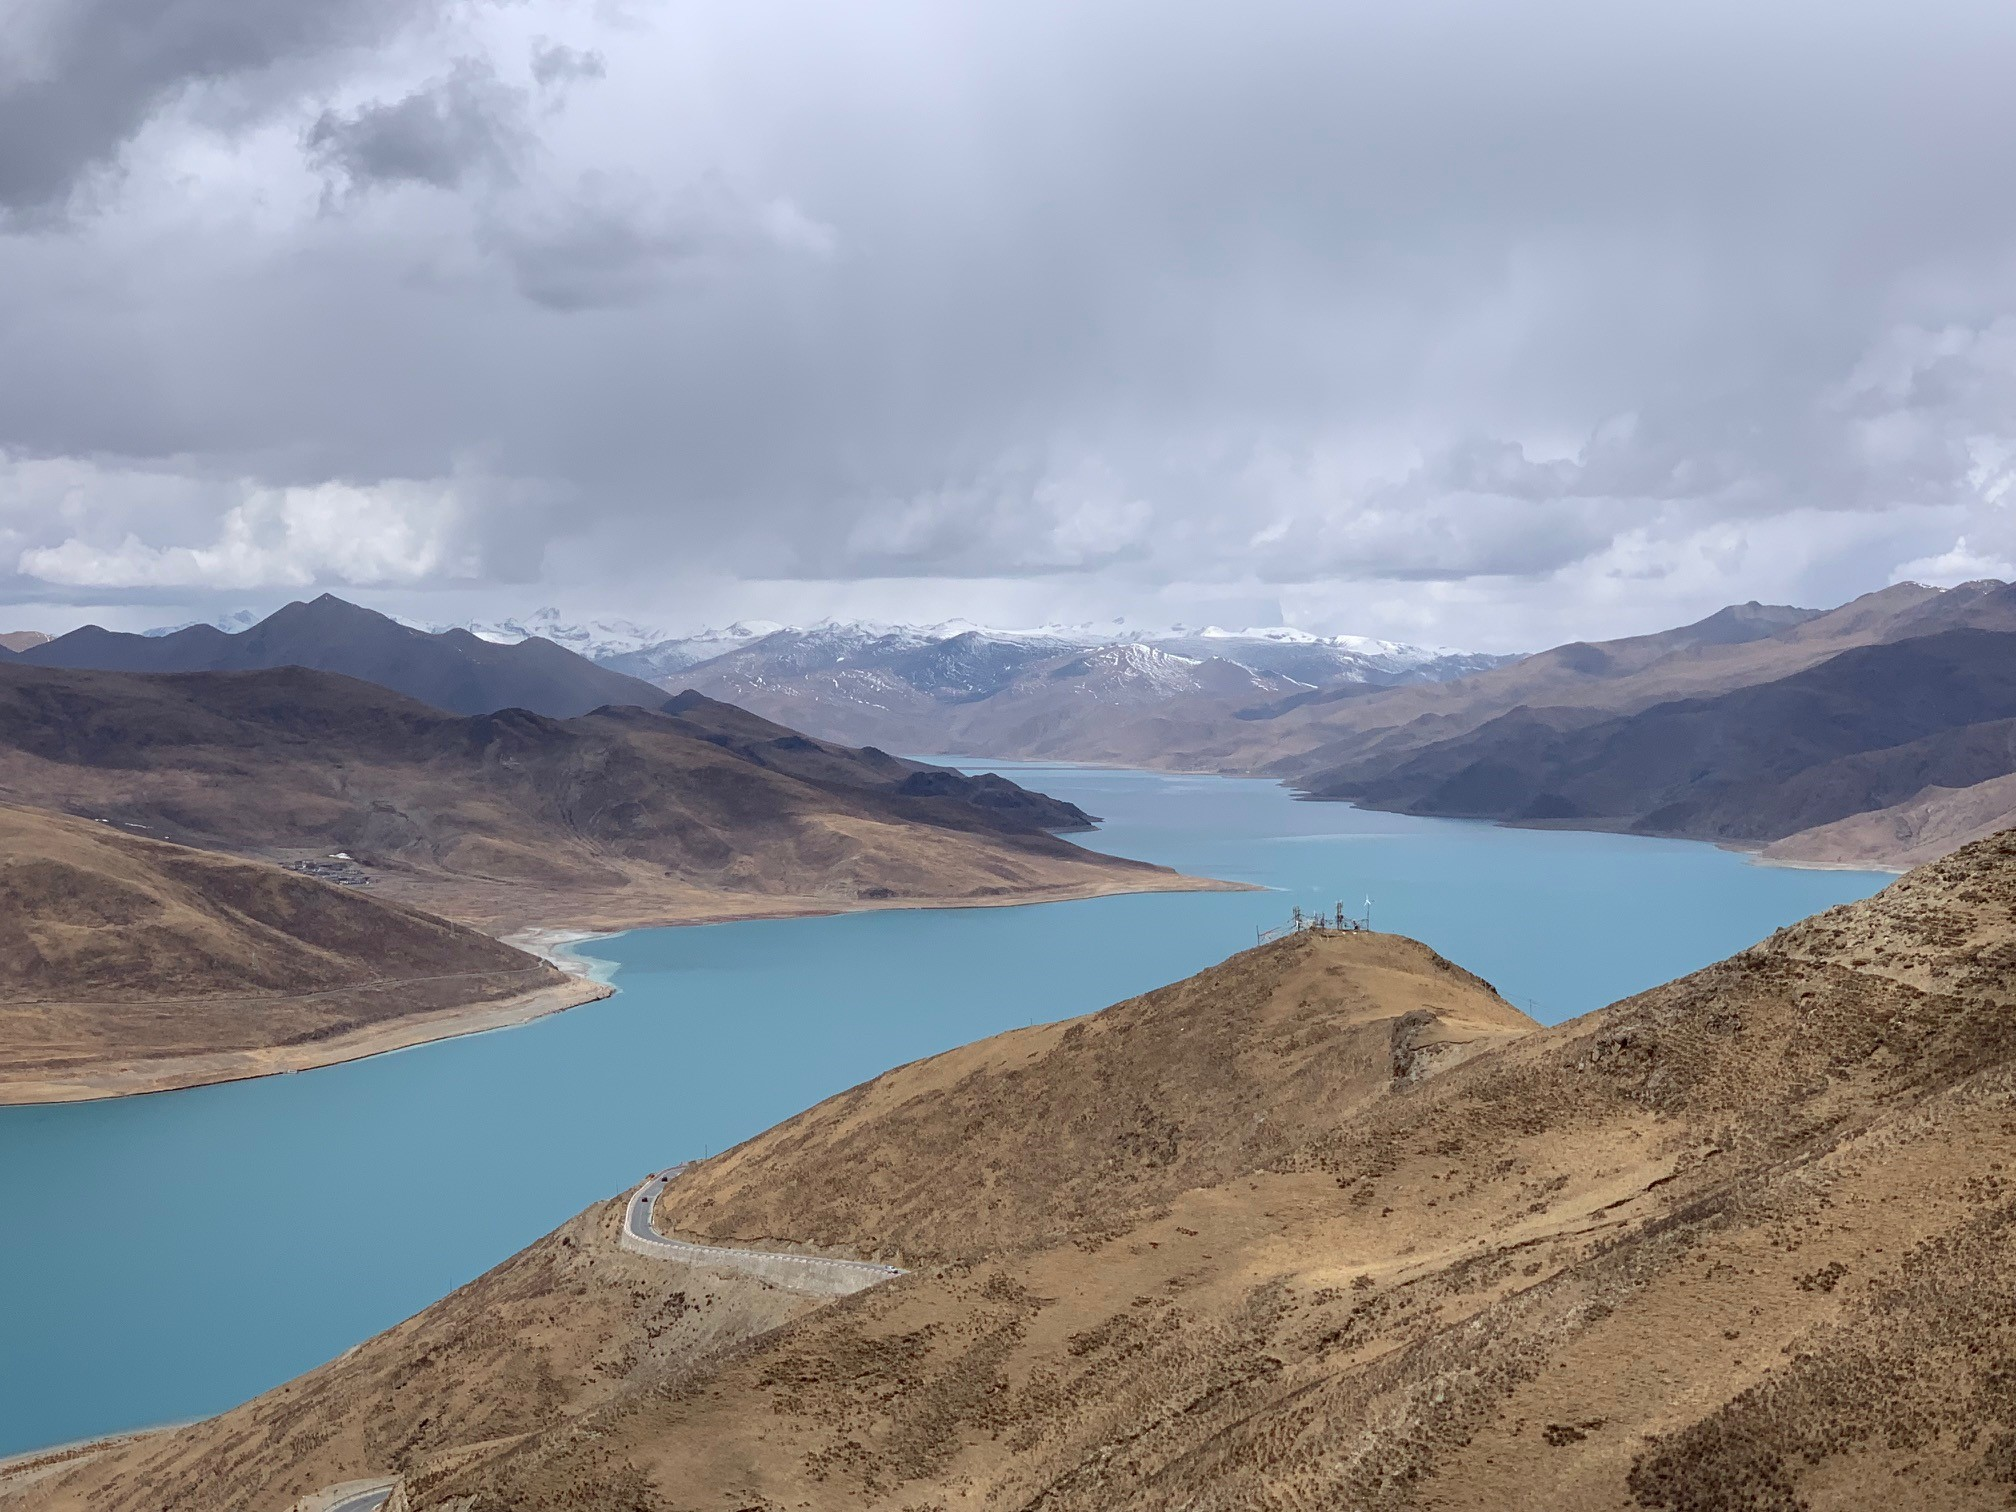 Panoramic view of the Tibetan plateau and highlands.